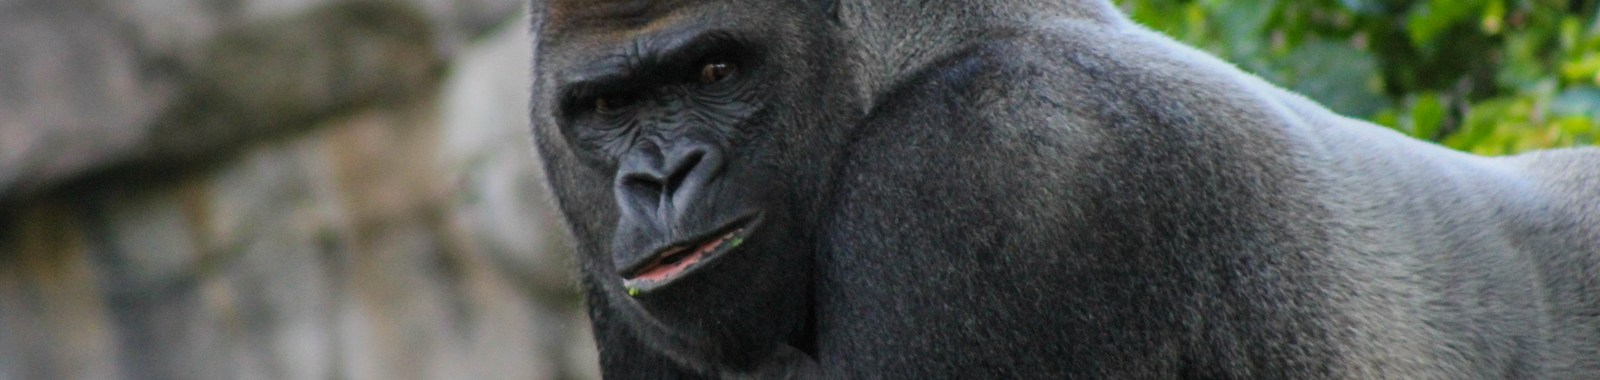 a Black Gorilla staring into the photo